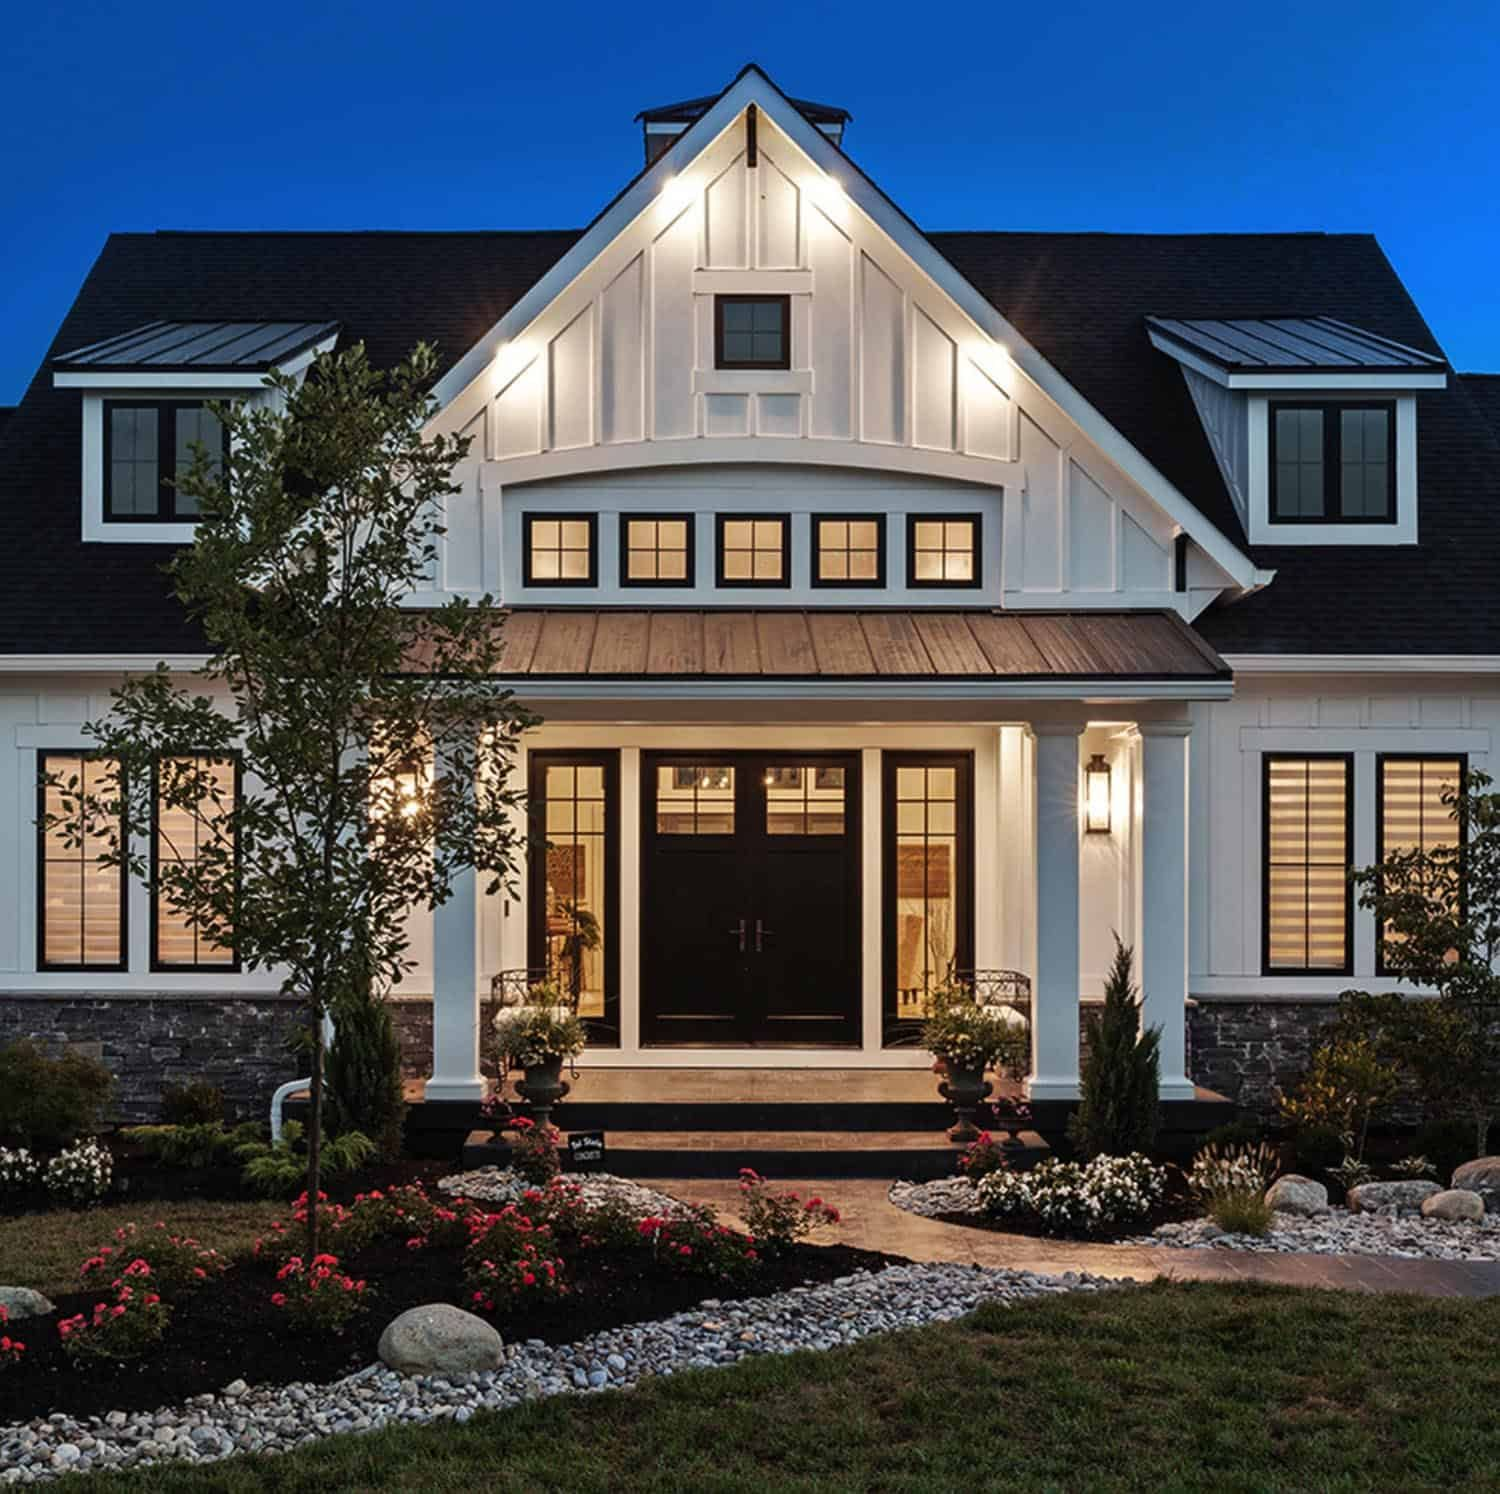 Pin On Exterior Designs